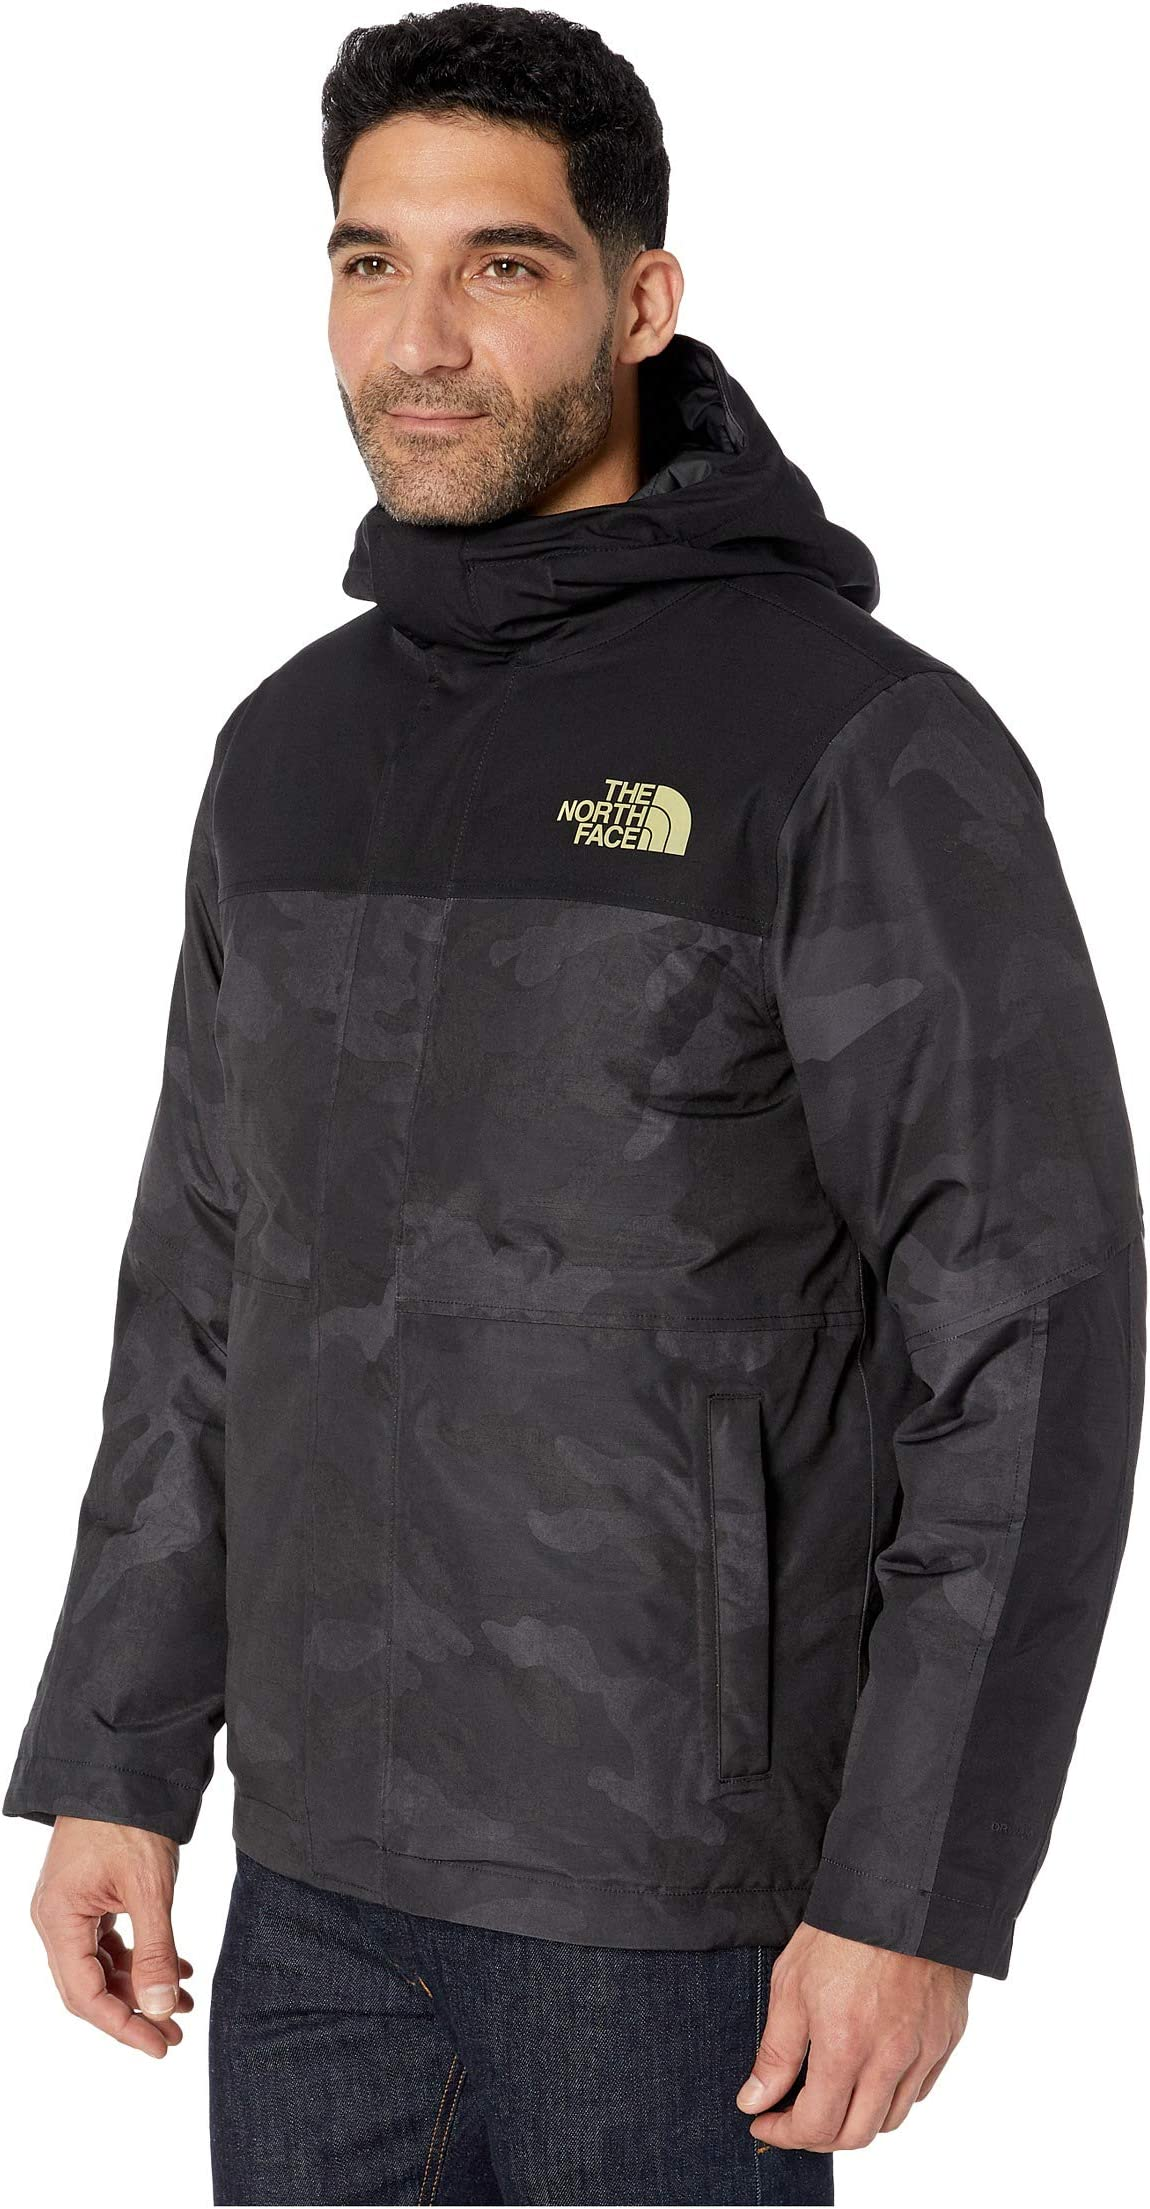 The North Face Balham Insulated Jacket sxQZ1